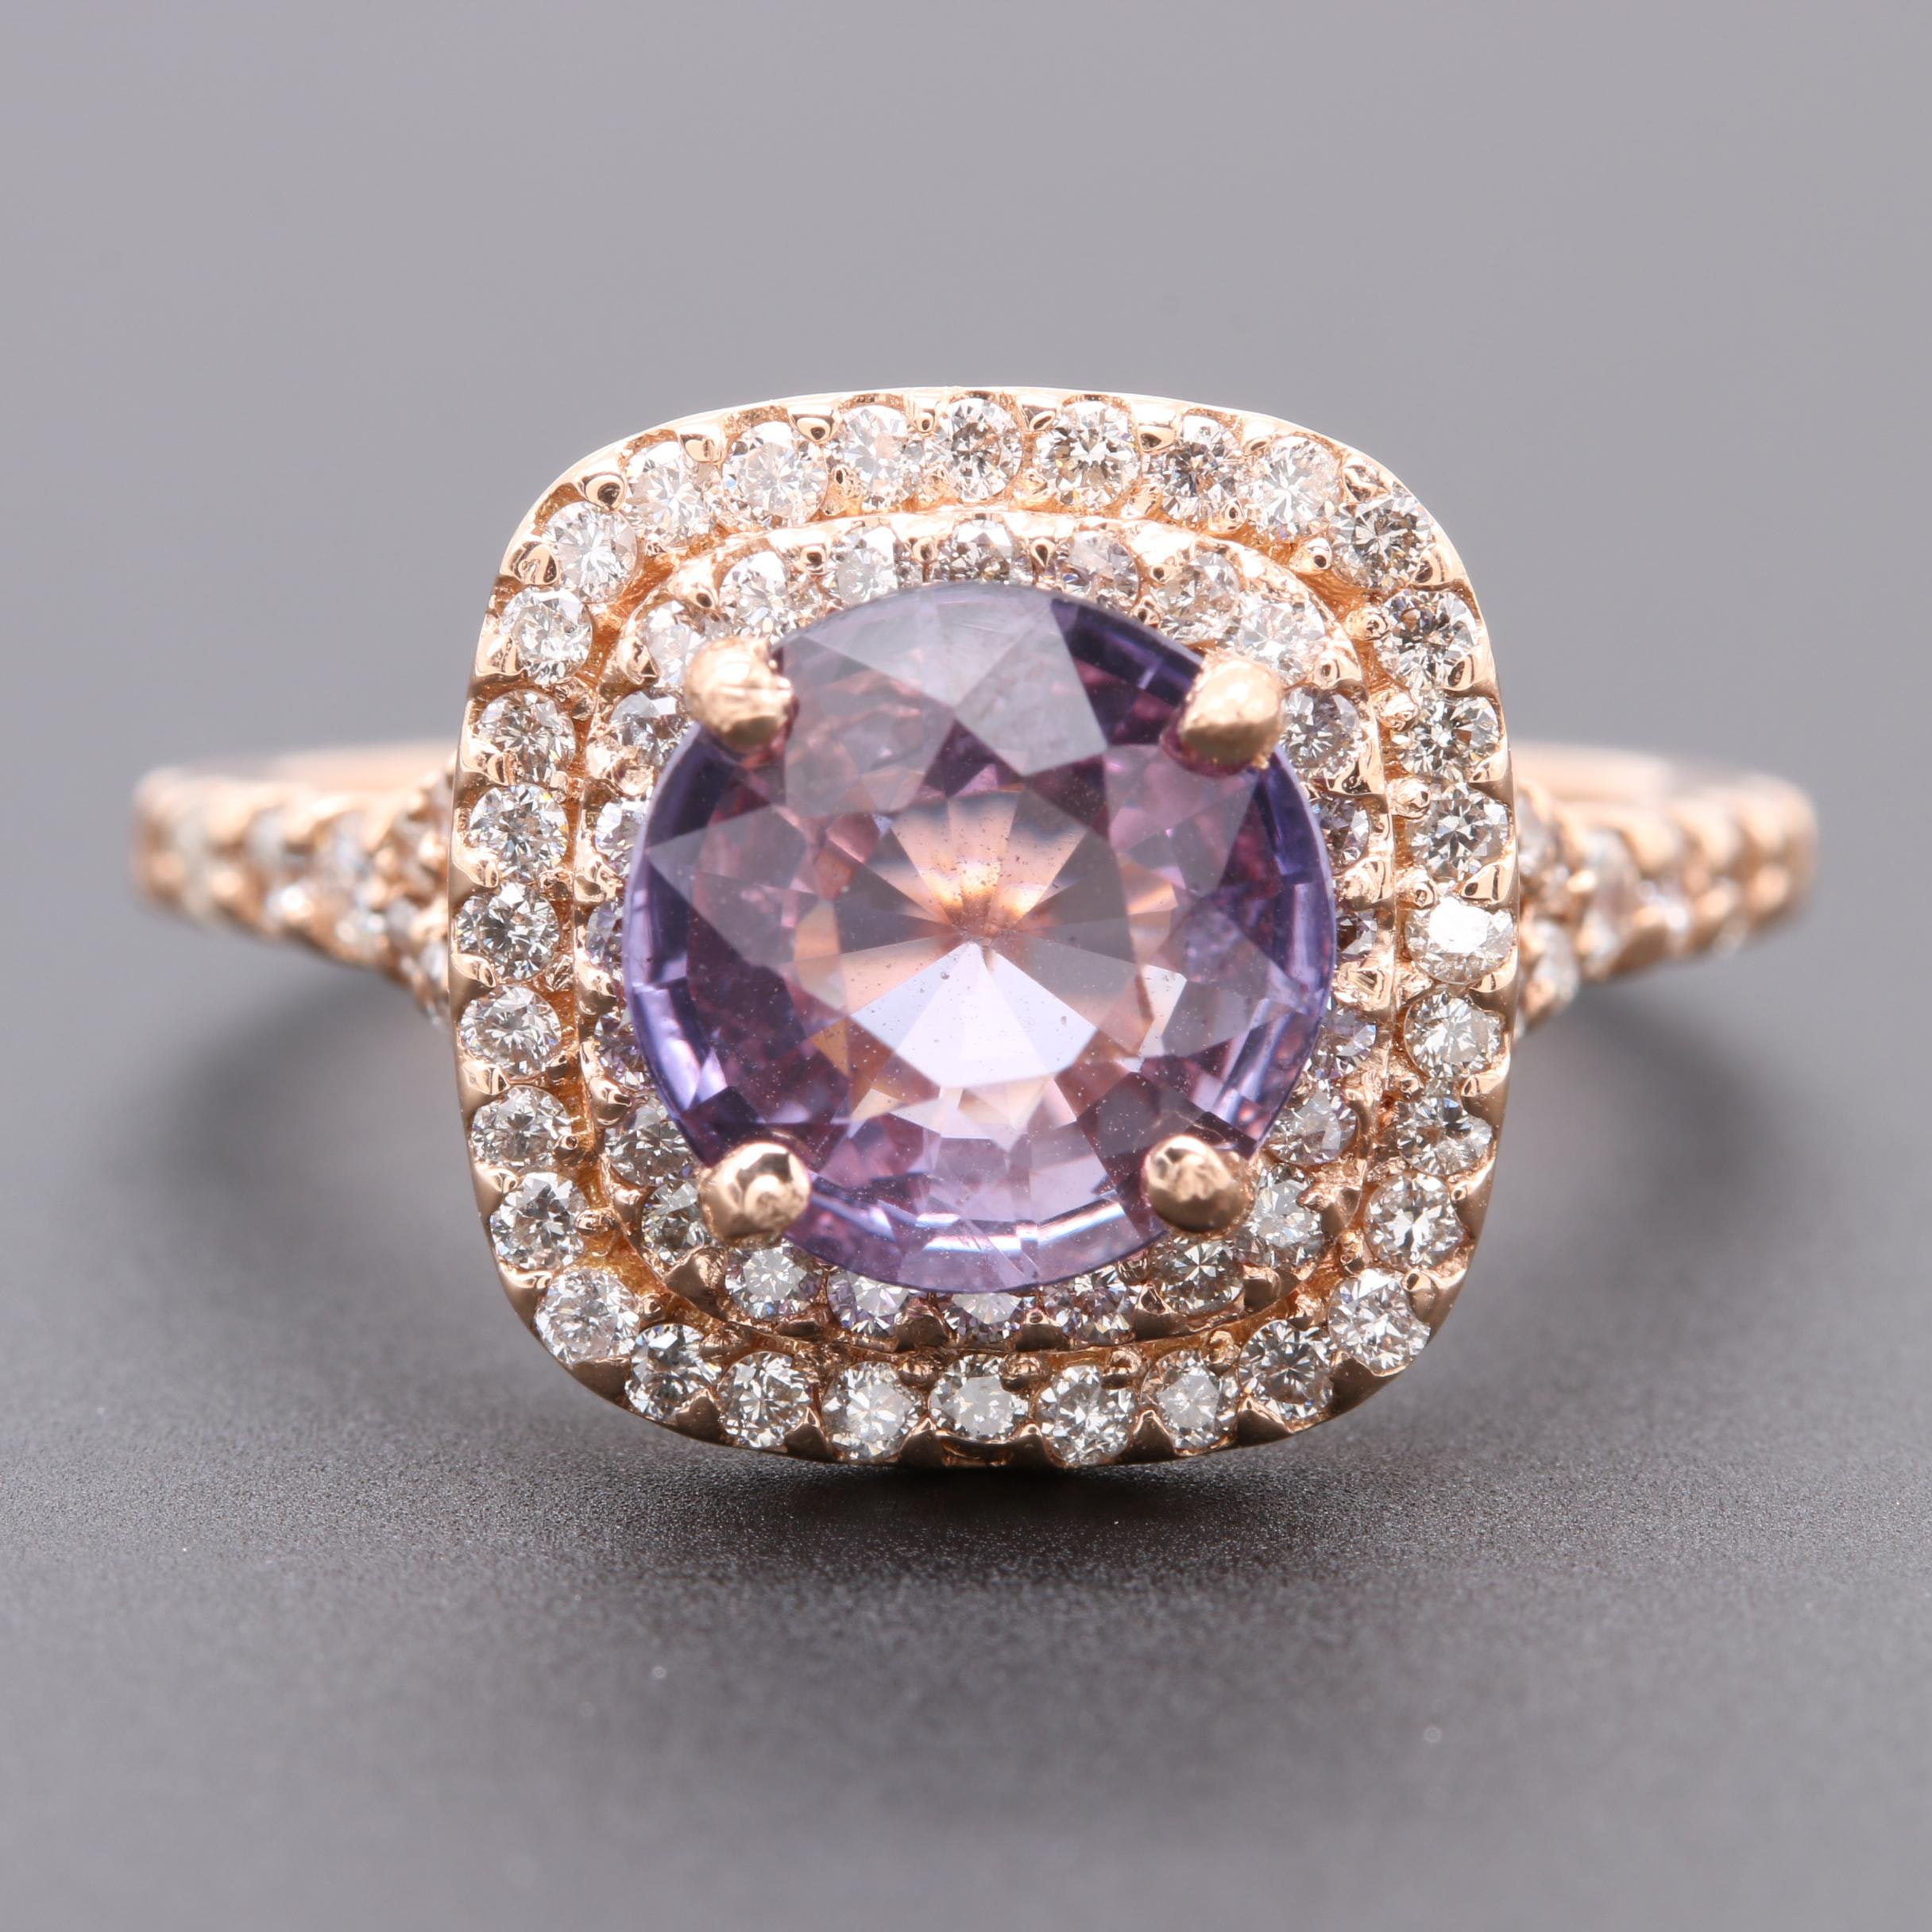 18K Rose Gold 1.28 CT Color Change Sapphire and Diamond Ring